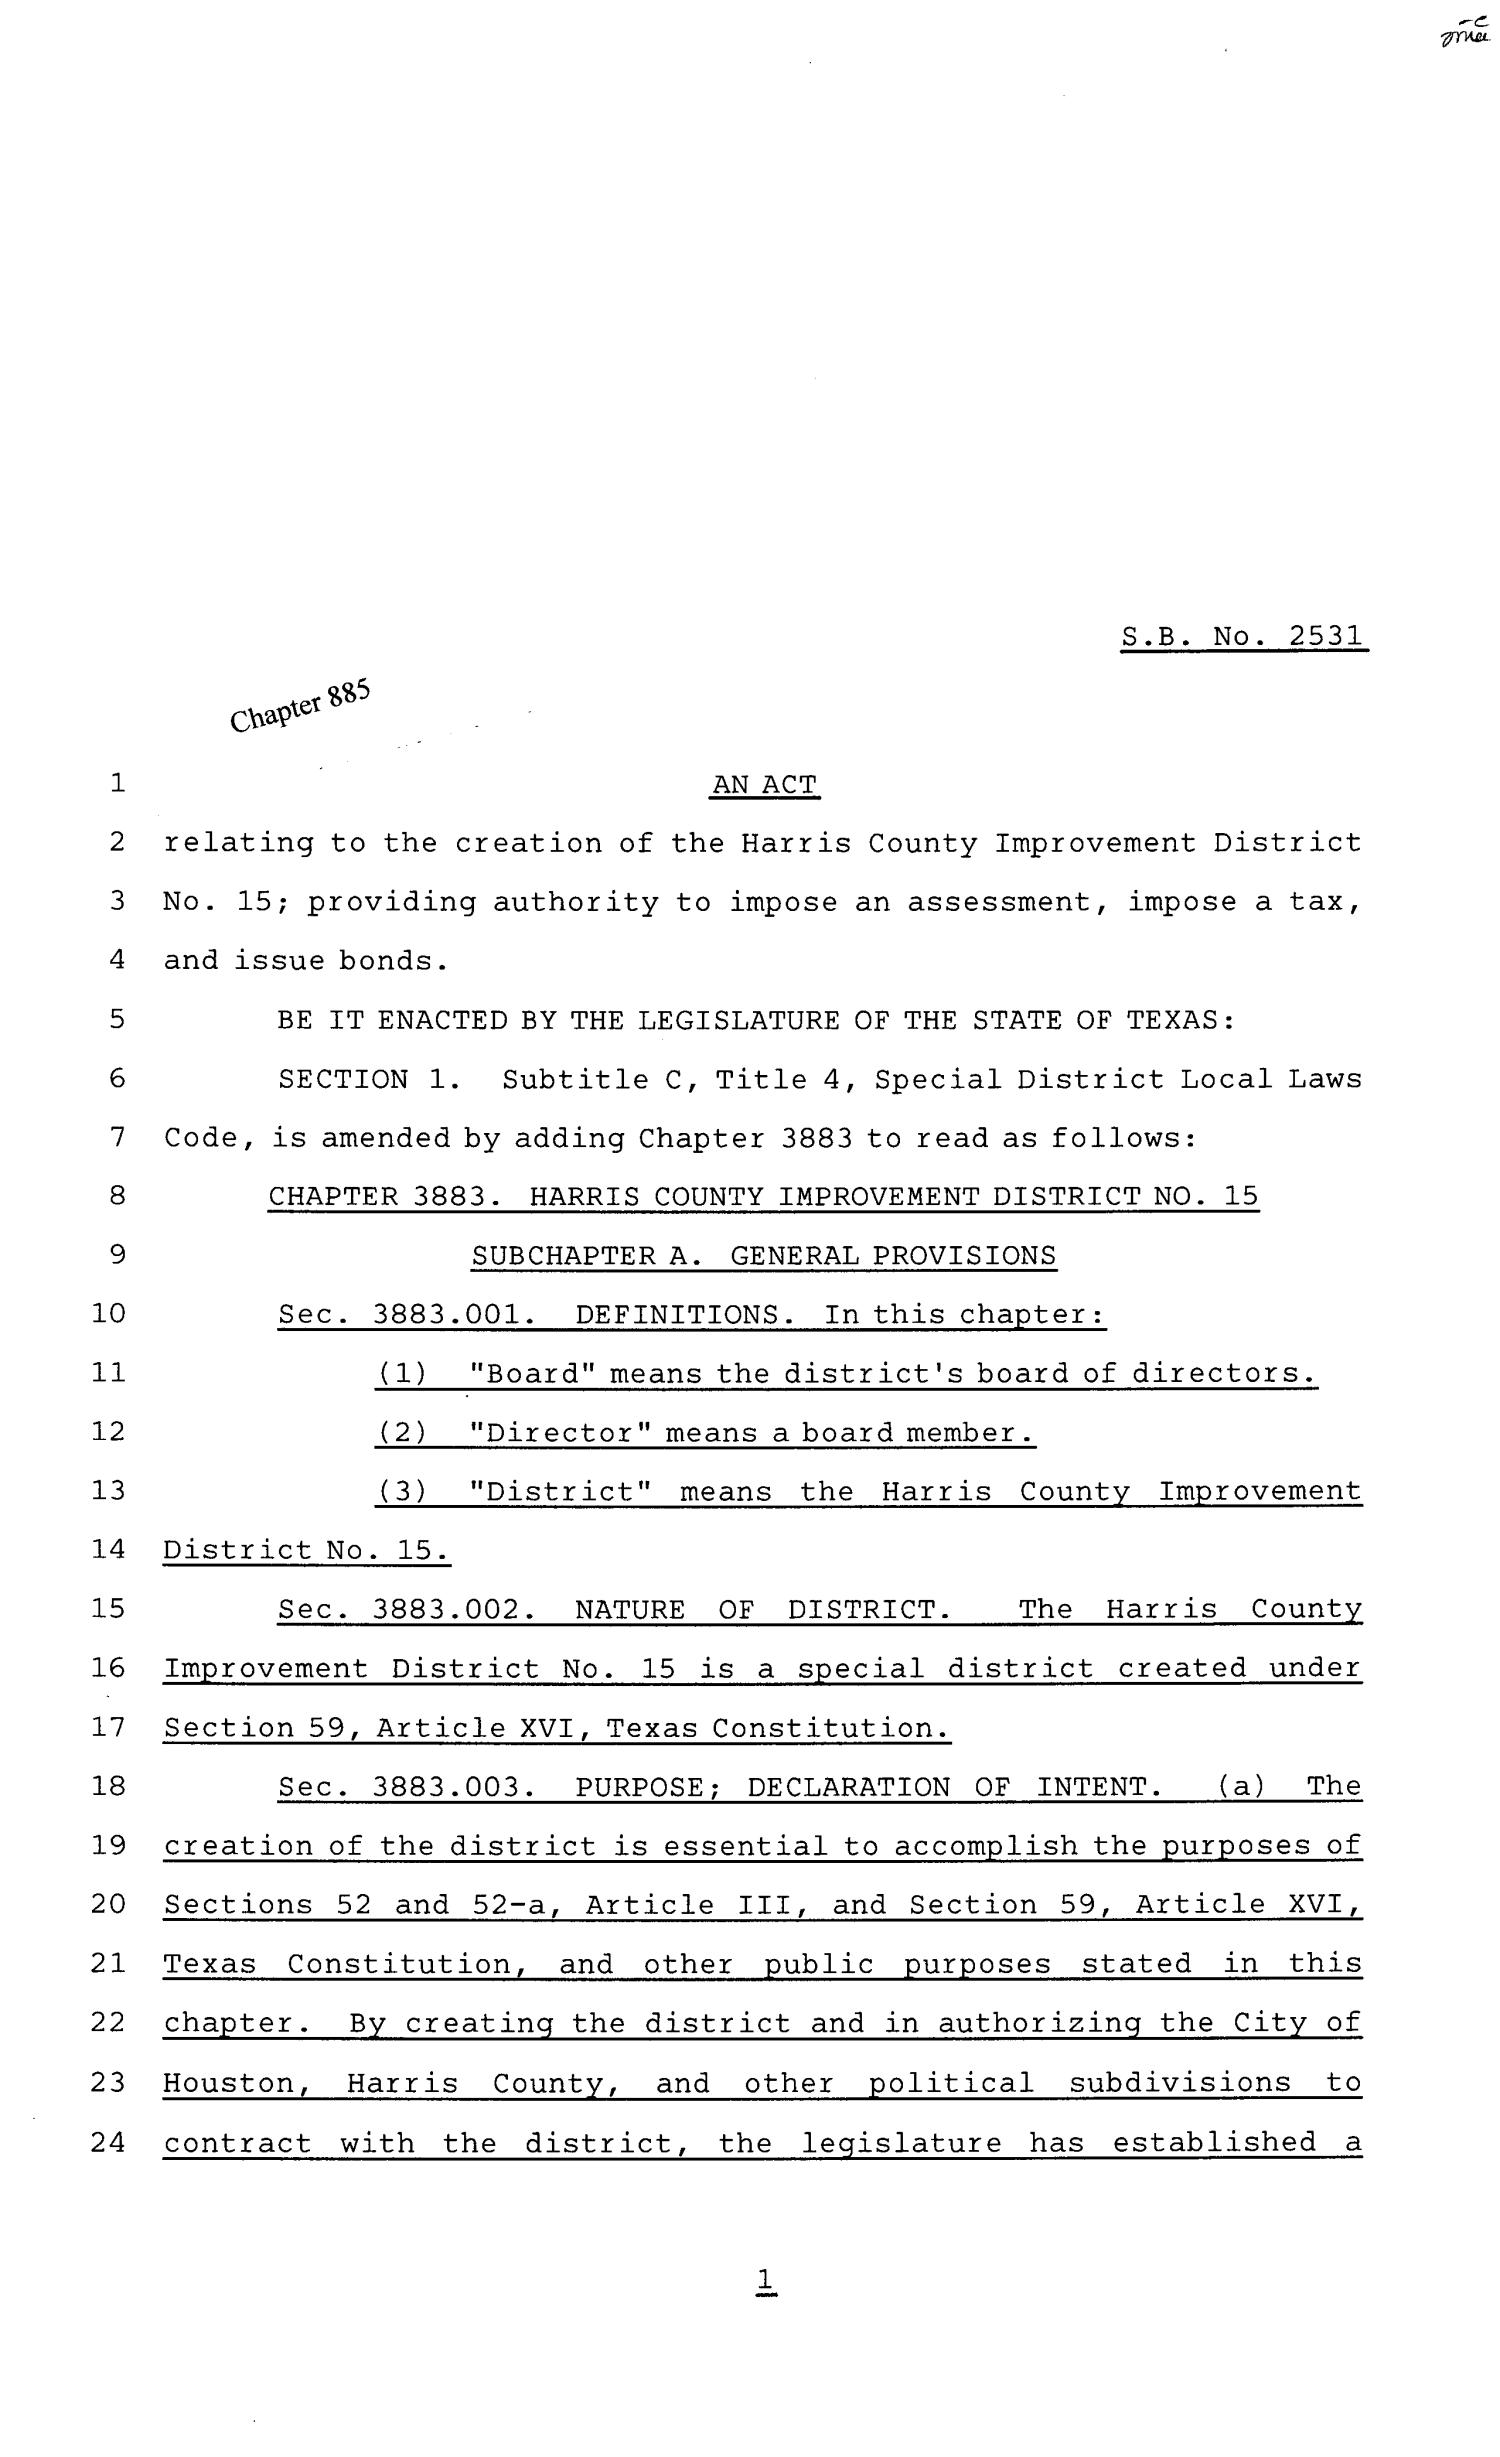 81st Texas Legislature, Senate Bill 2531, Chapter 885                                                                                                      [Sequence #]: 1 of 29